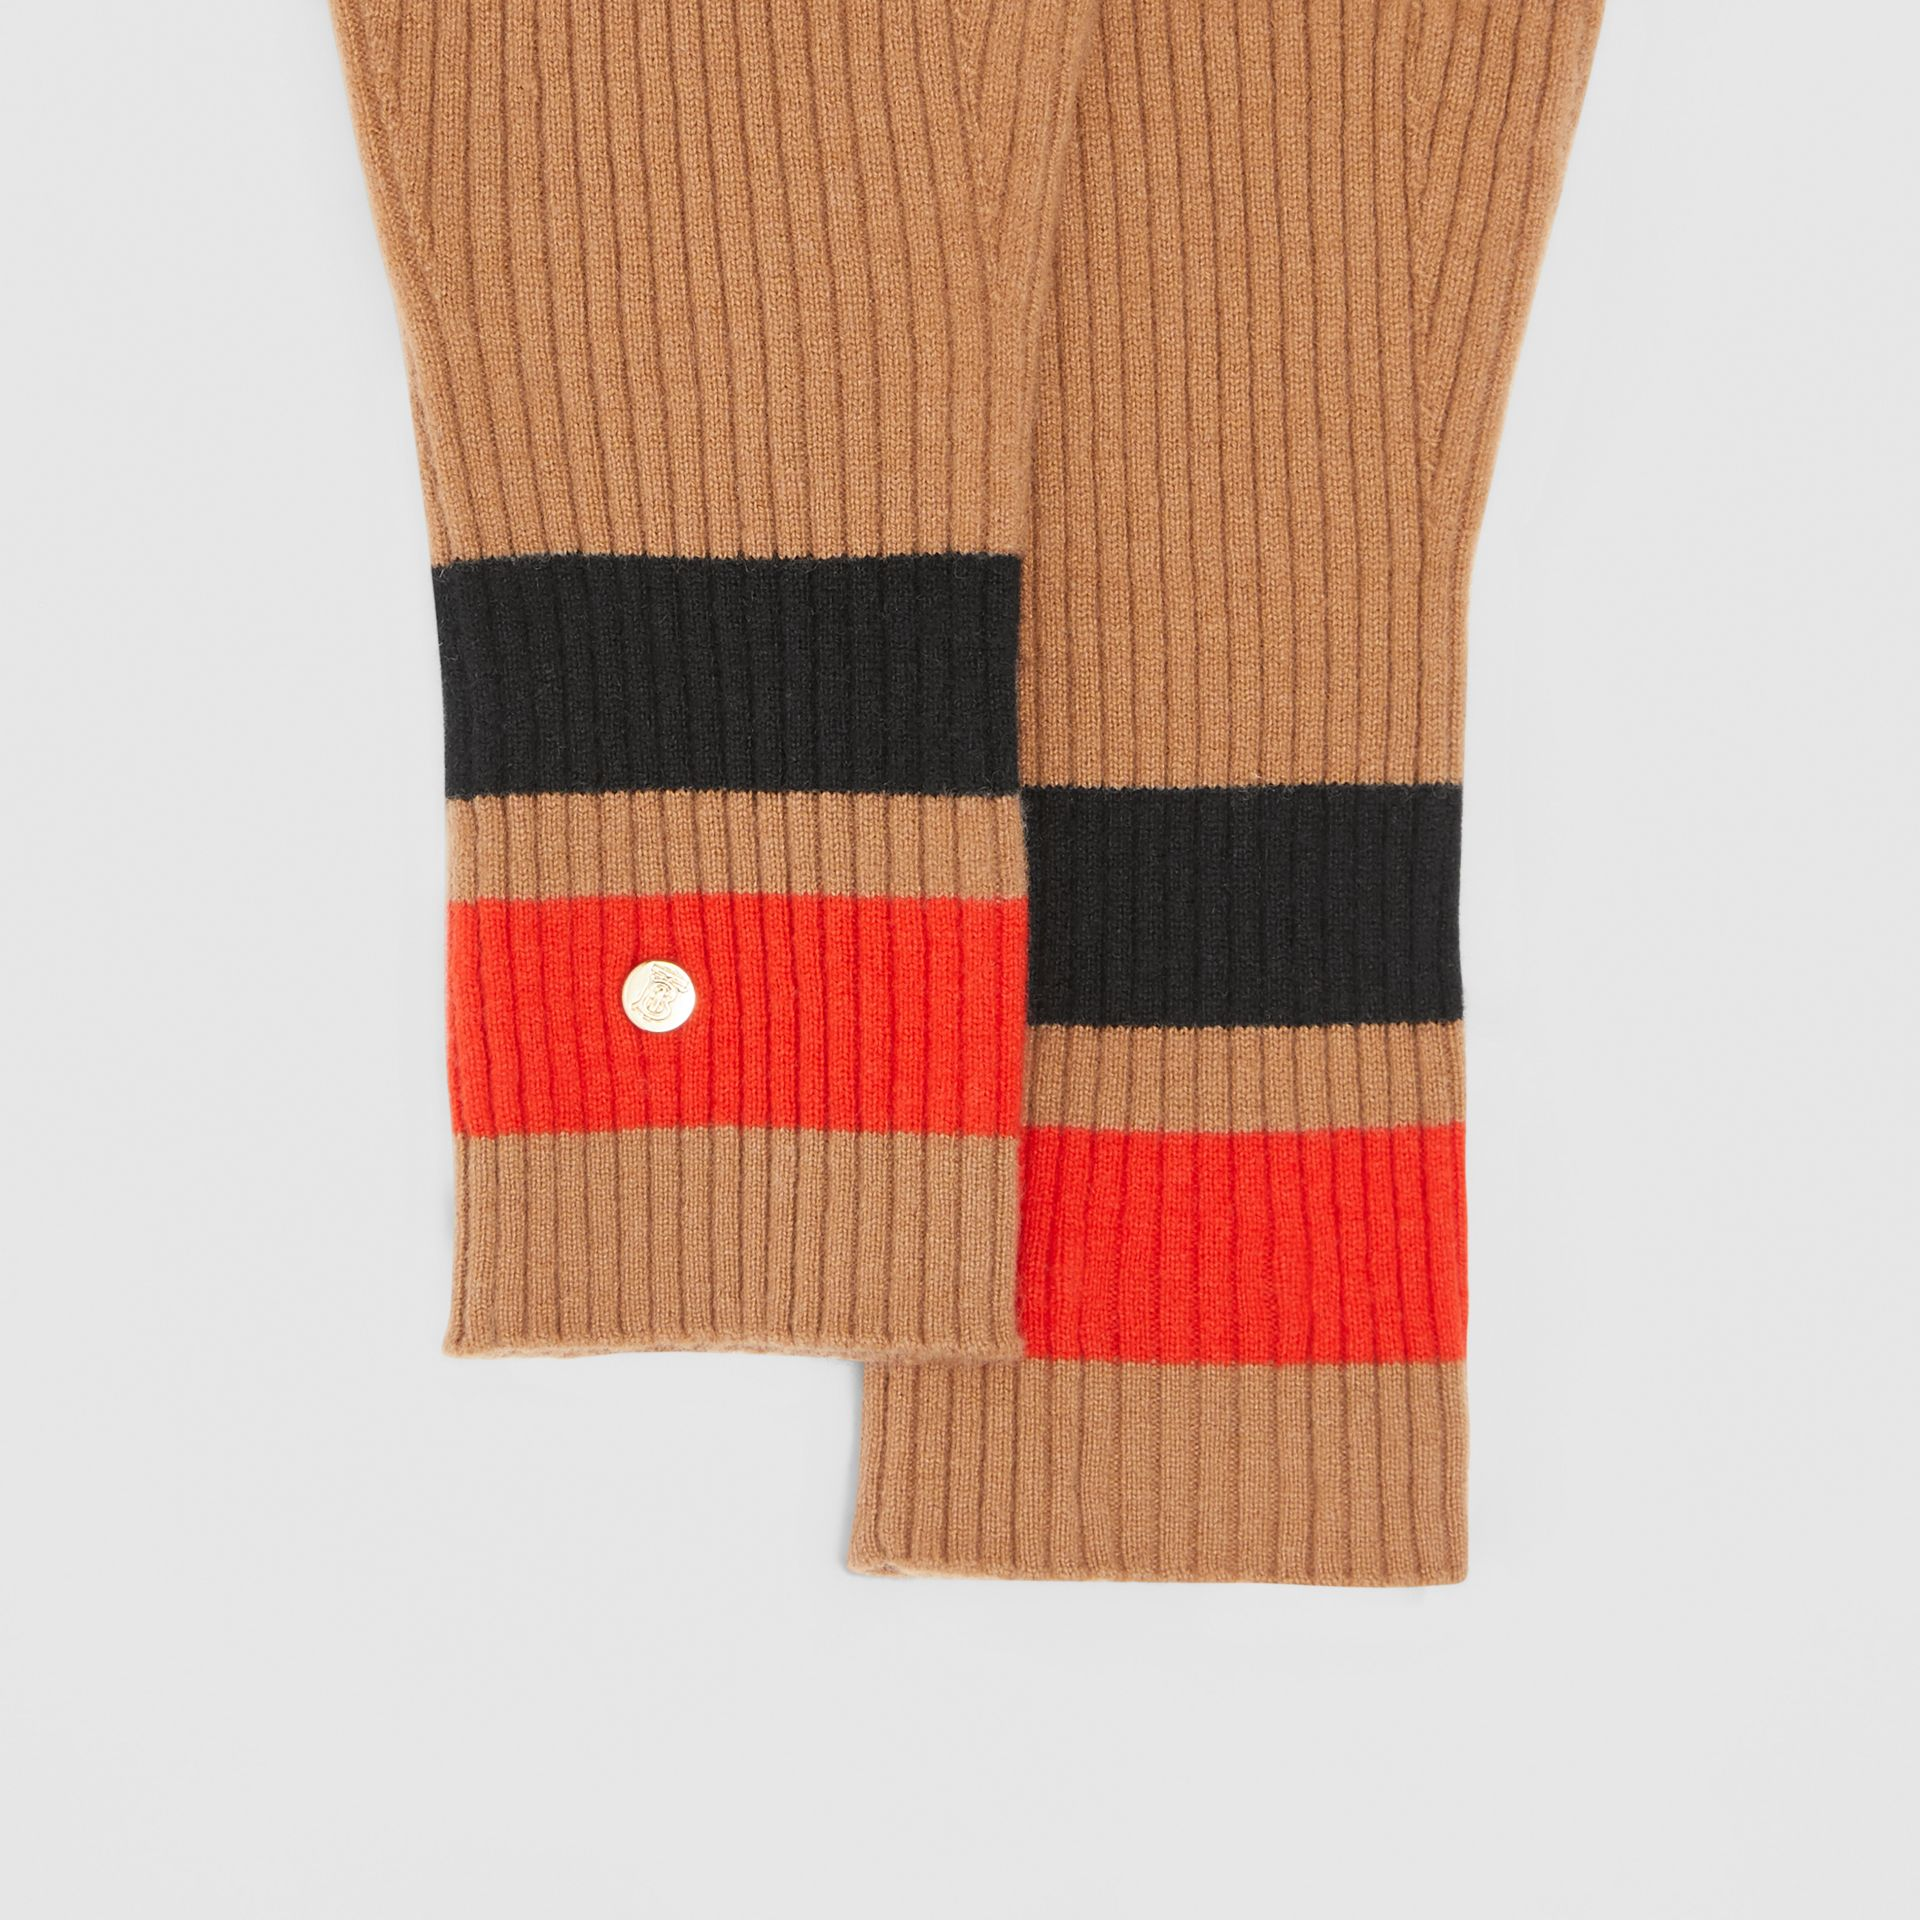 Monogram Motif Merino Wool Cashmere Gloves in Warm Camel | Burberry - gallery image 1